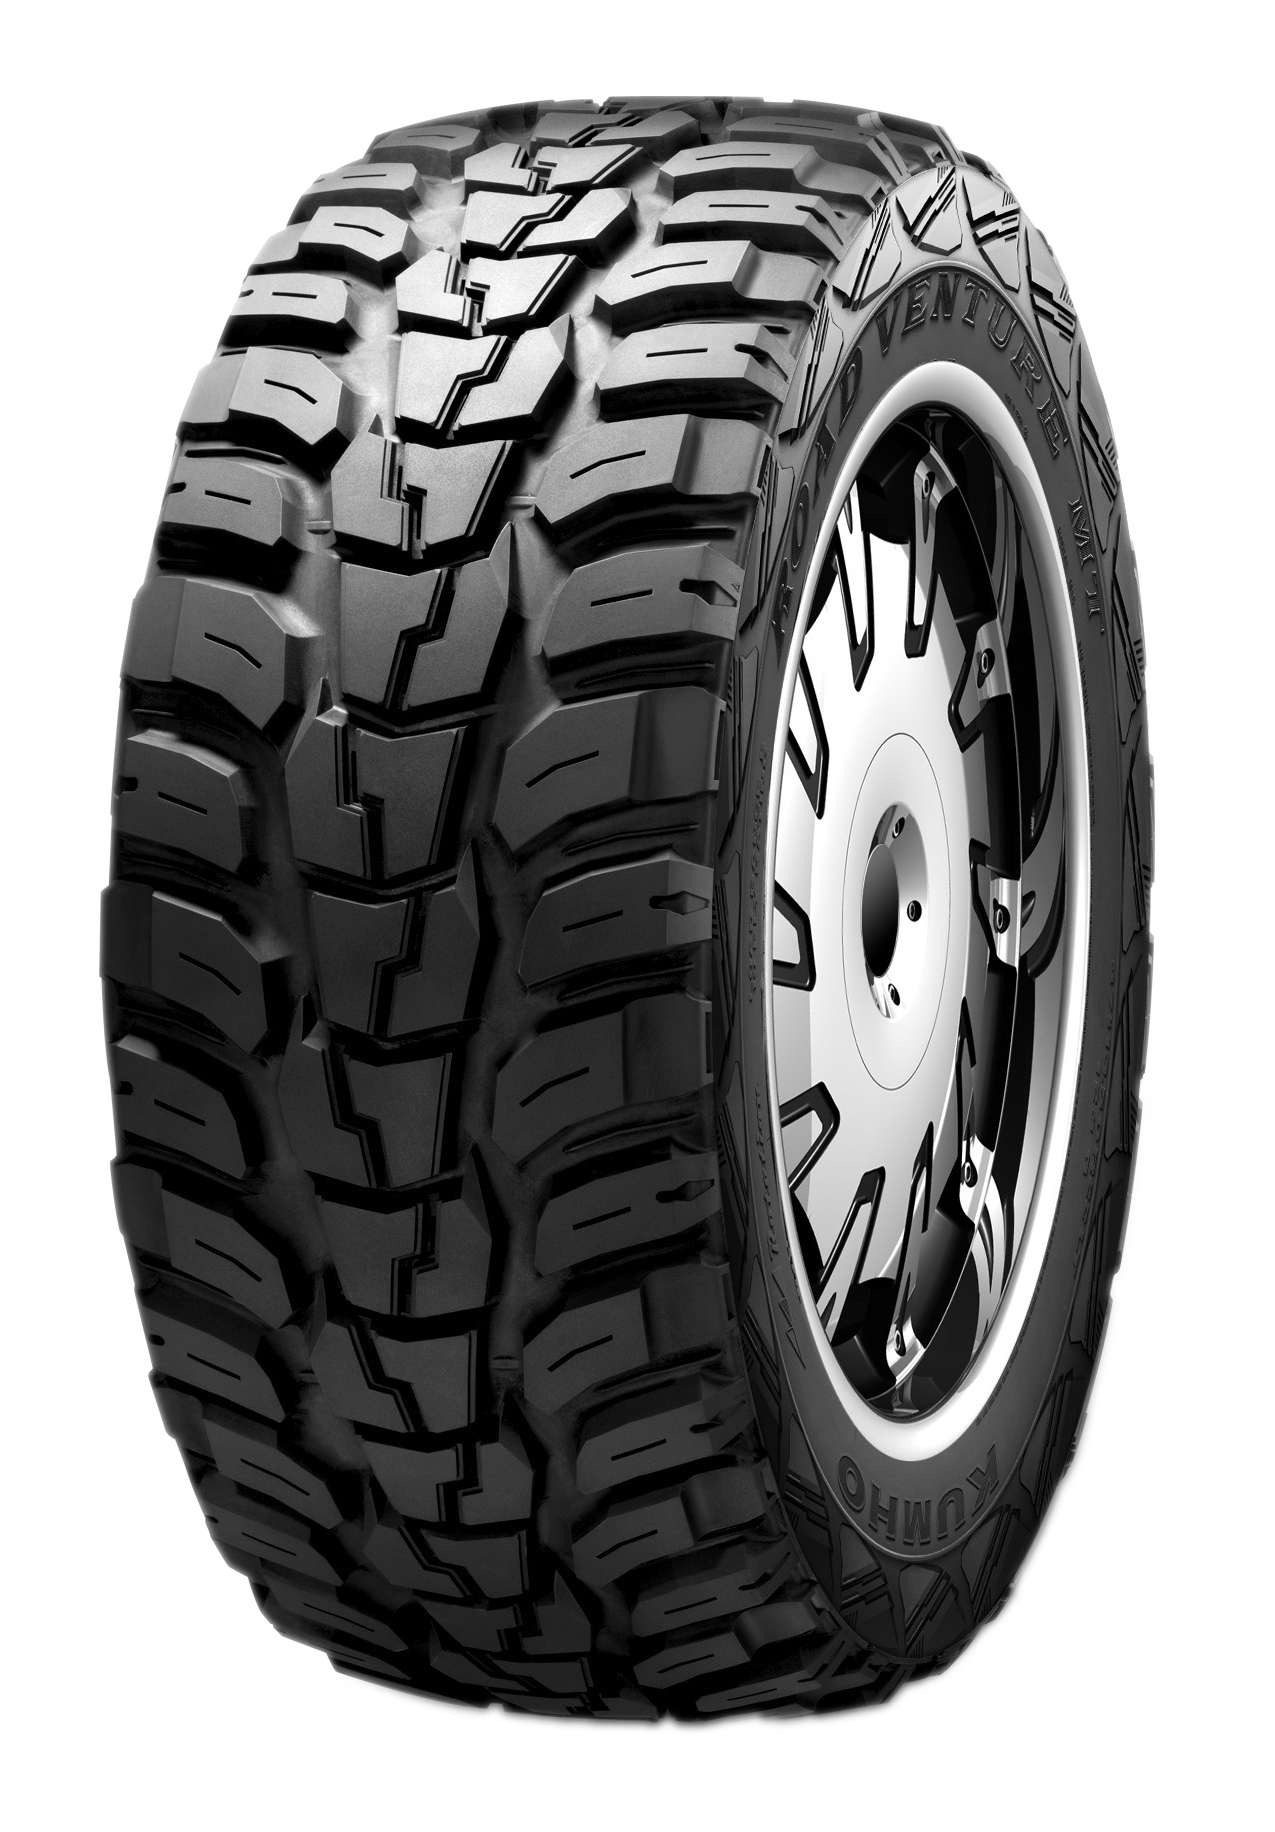 Can I Use Xl Tyres On Normal Car